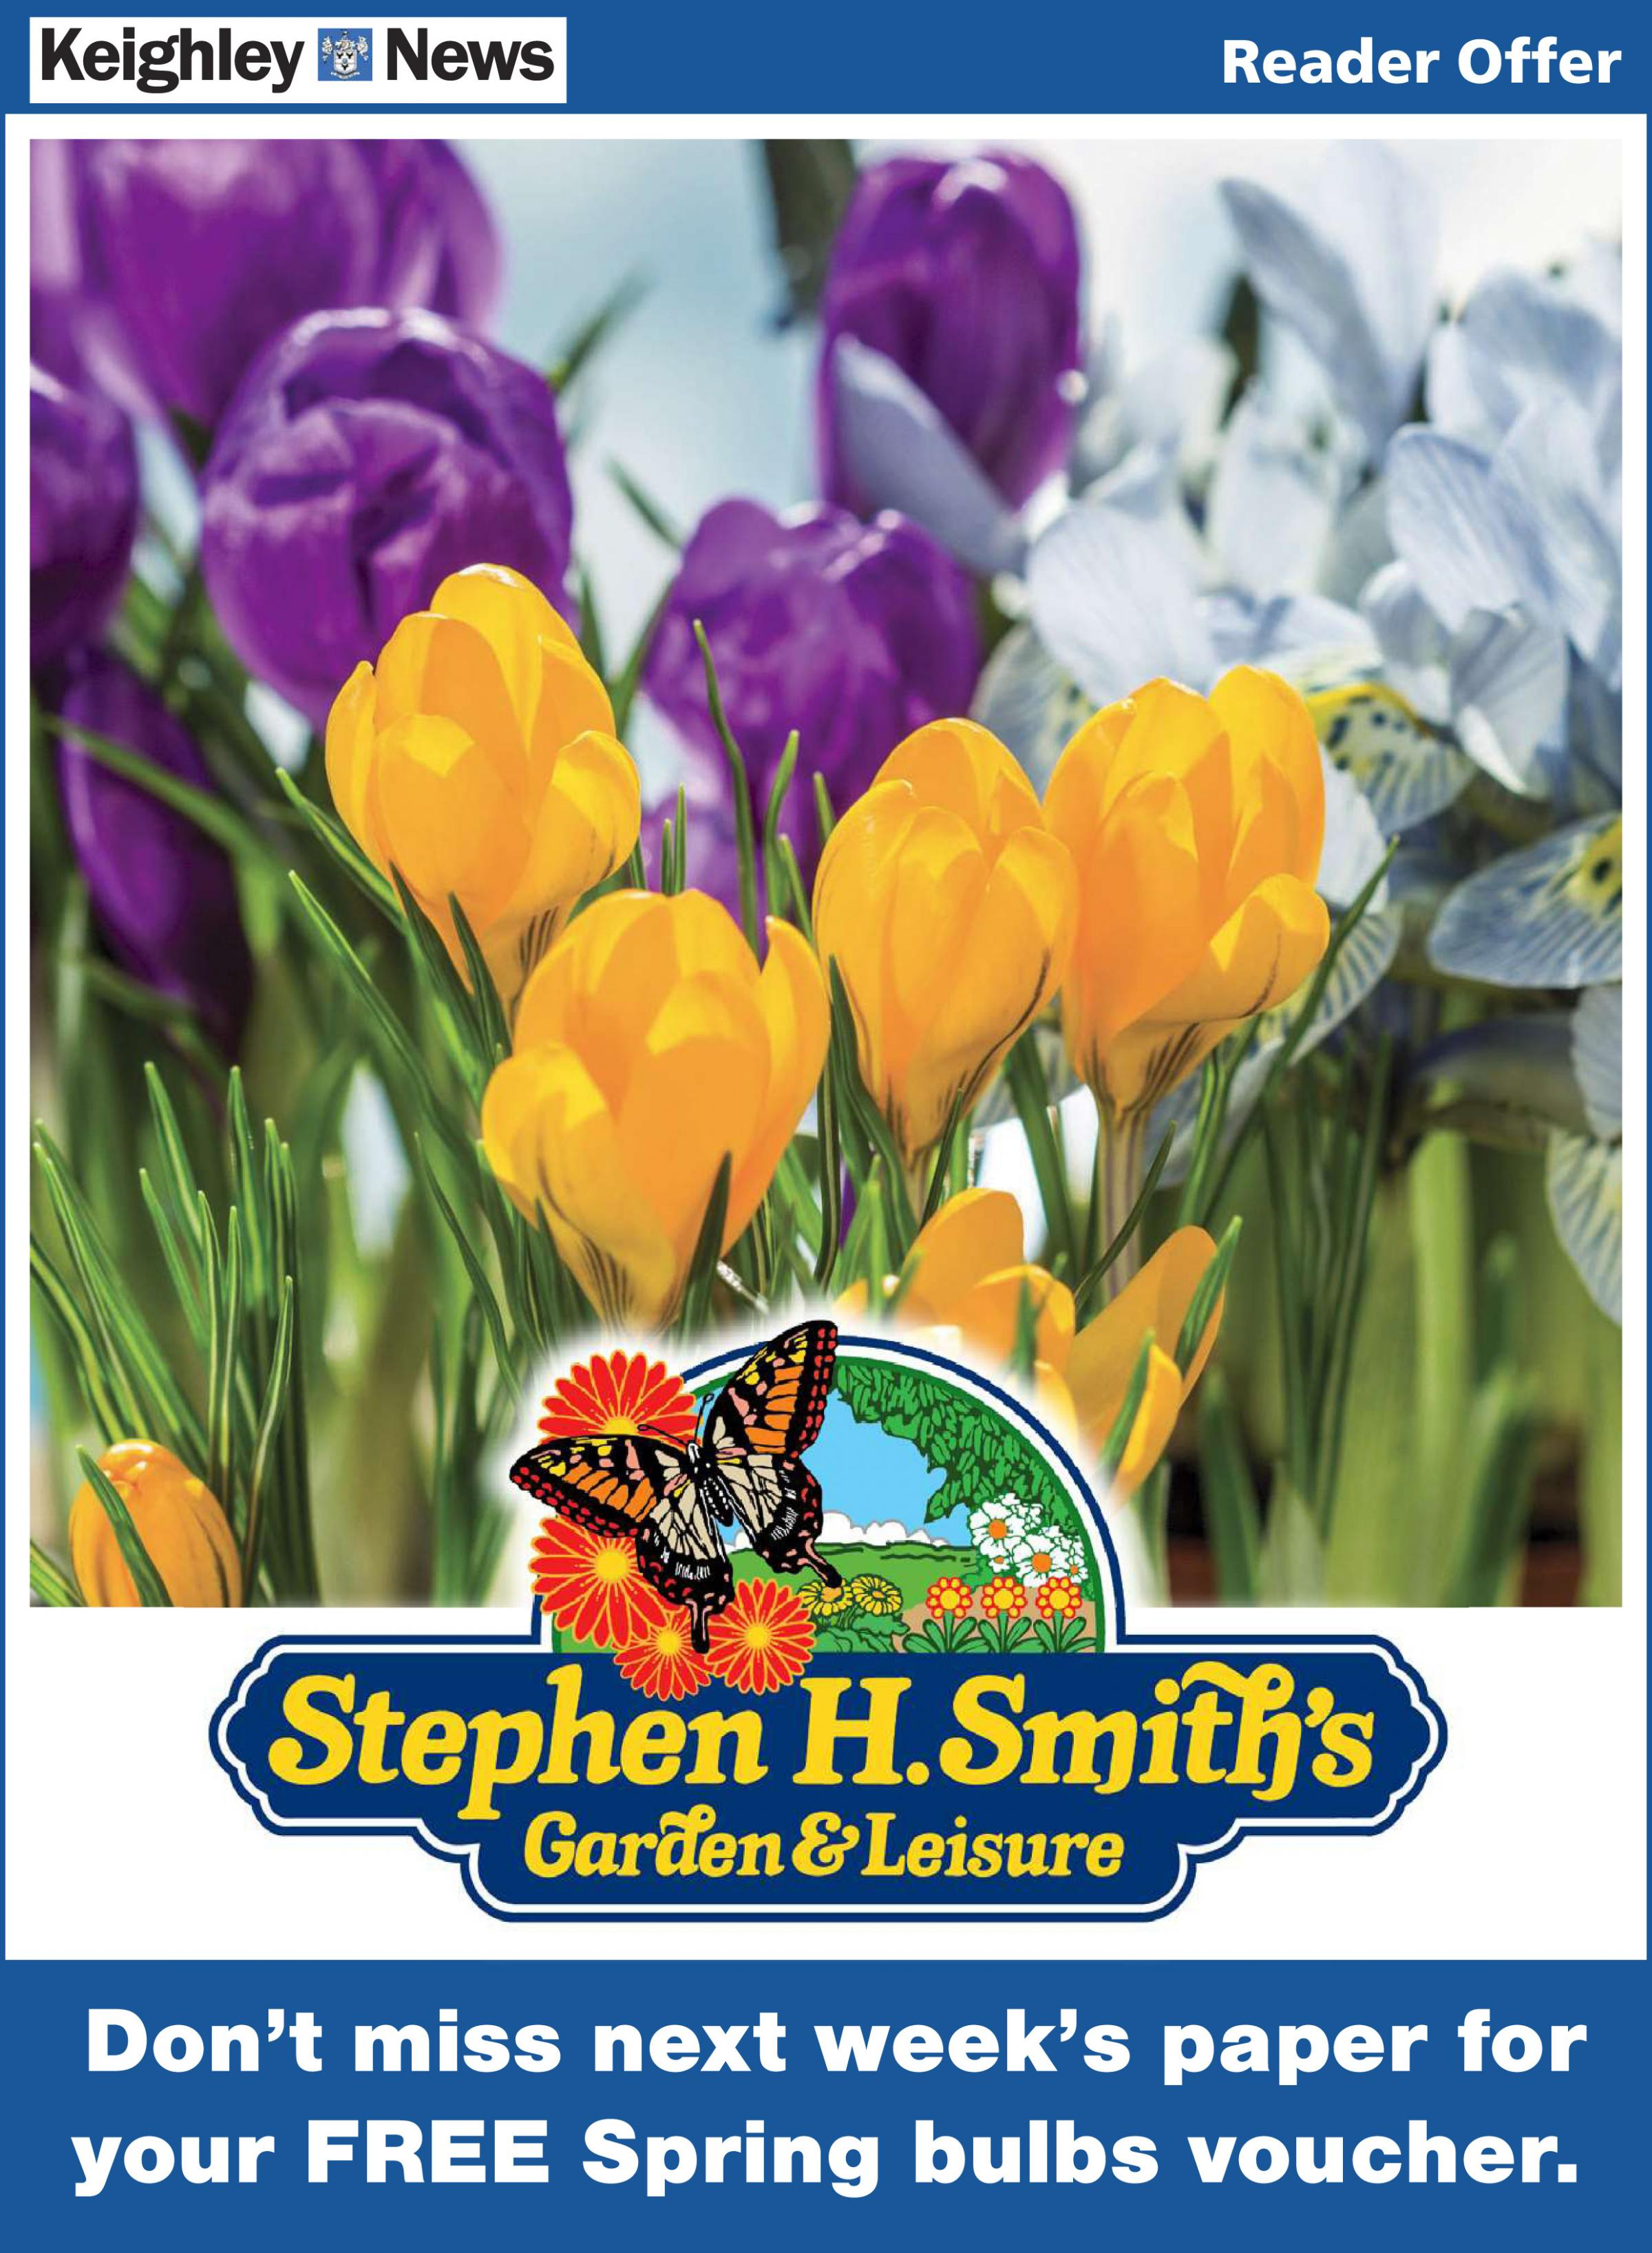 Voucher for FREE Spring bulbs worth £3 in this week's Keighley News